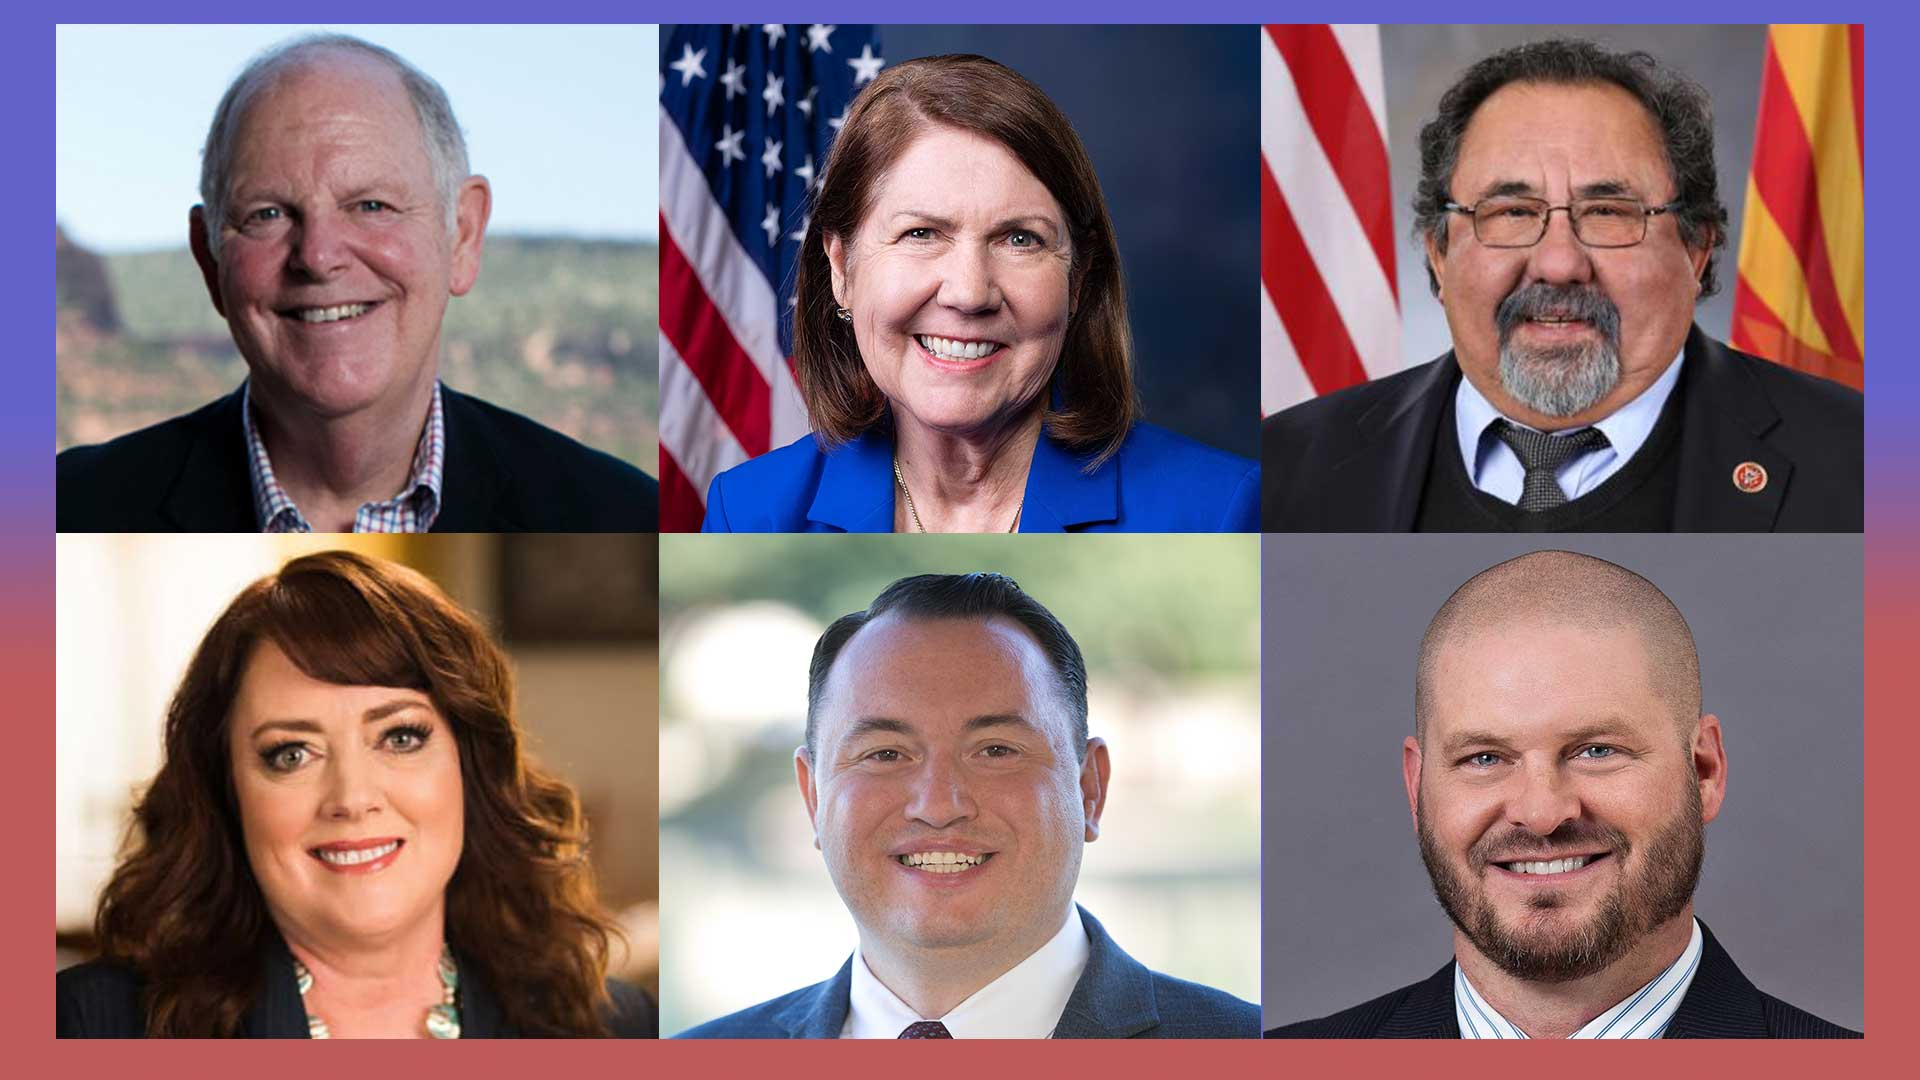 Left to right, 1st Congressional District candidates Tom O'Halleran (D, incumbent) and Tiffany Shedd (R). 2nd Congressional District candidates Ann Kirkpatrick (D, incumbent) and Brandon Martin (R). 3rd Congressional District candidates Raúl Grijalva (D, incumbent) and Daniel Wood (R).